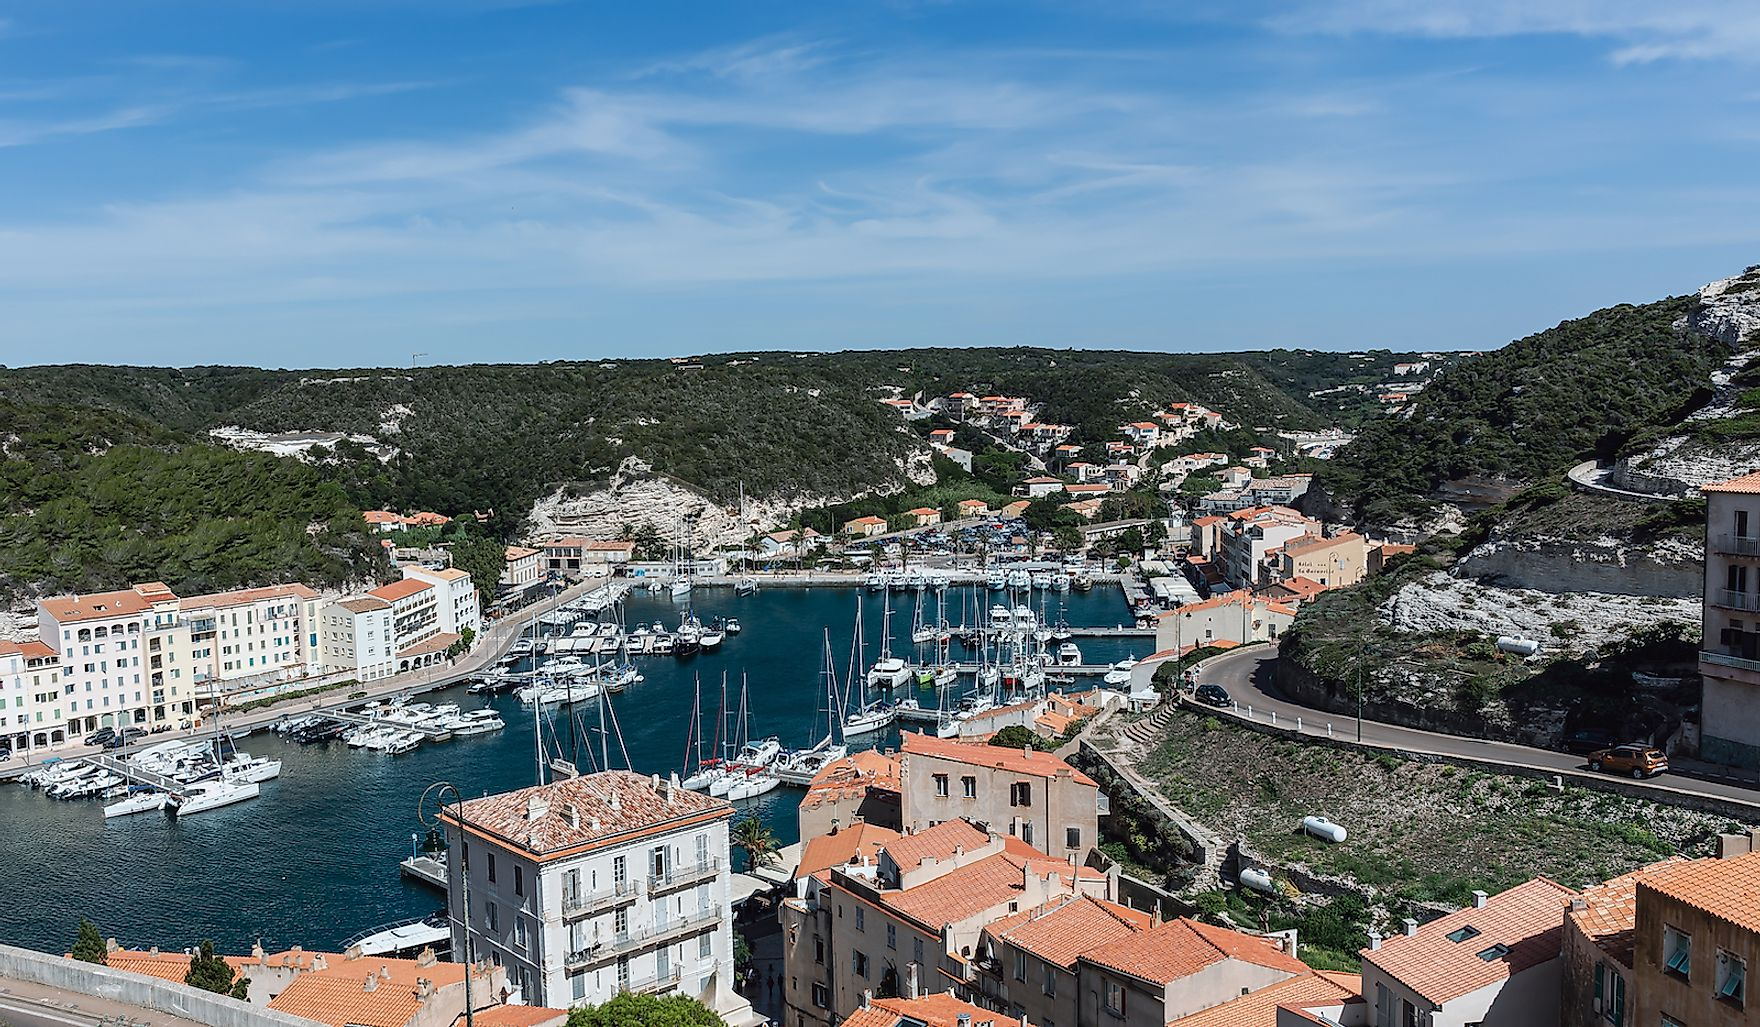 Aerial view of the harbor in Bonifacio, Corsica, an ancient city located directly on the Mediterranean Sea, separated from Sardinia by the Strait of Bonifacio.